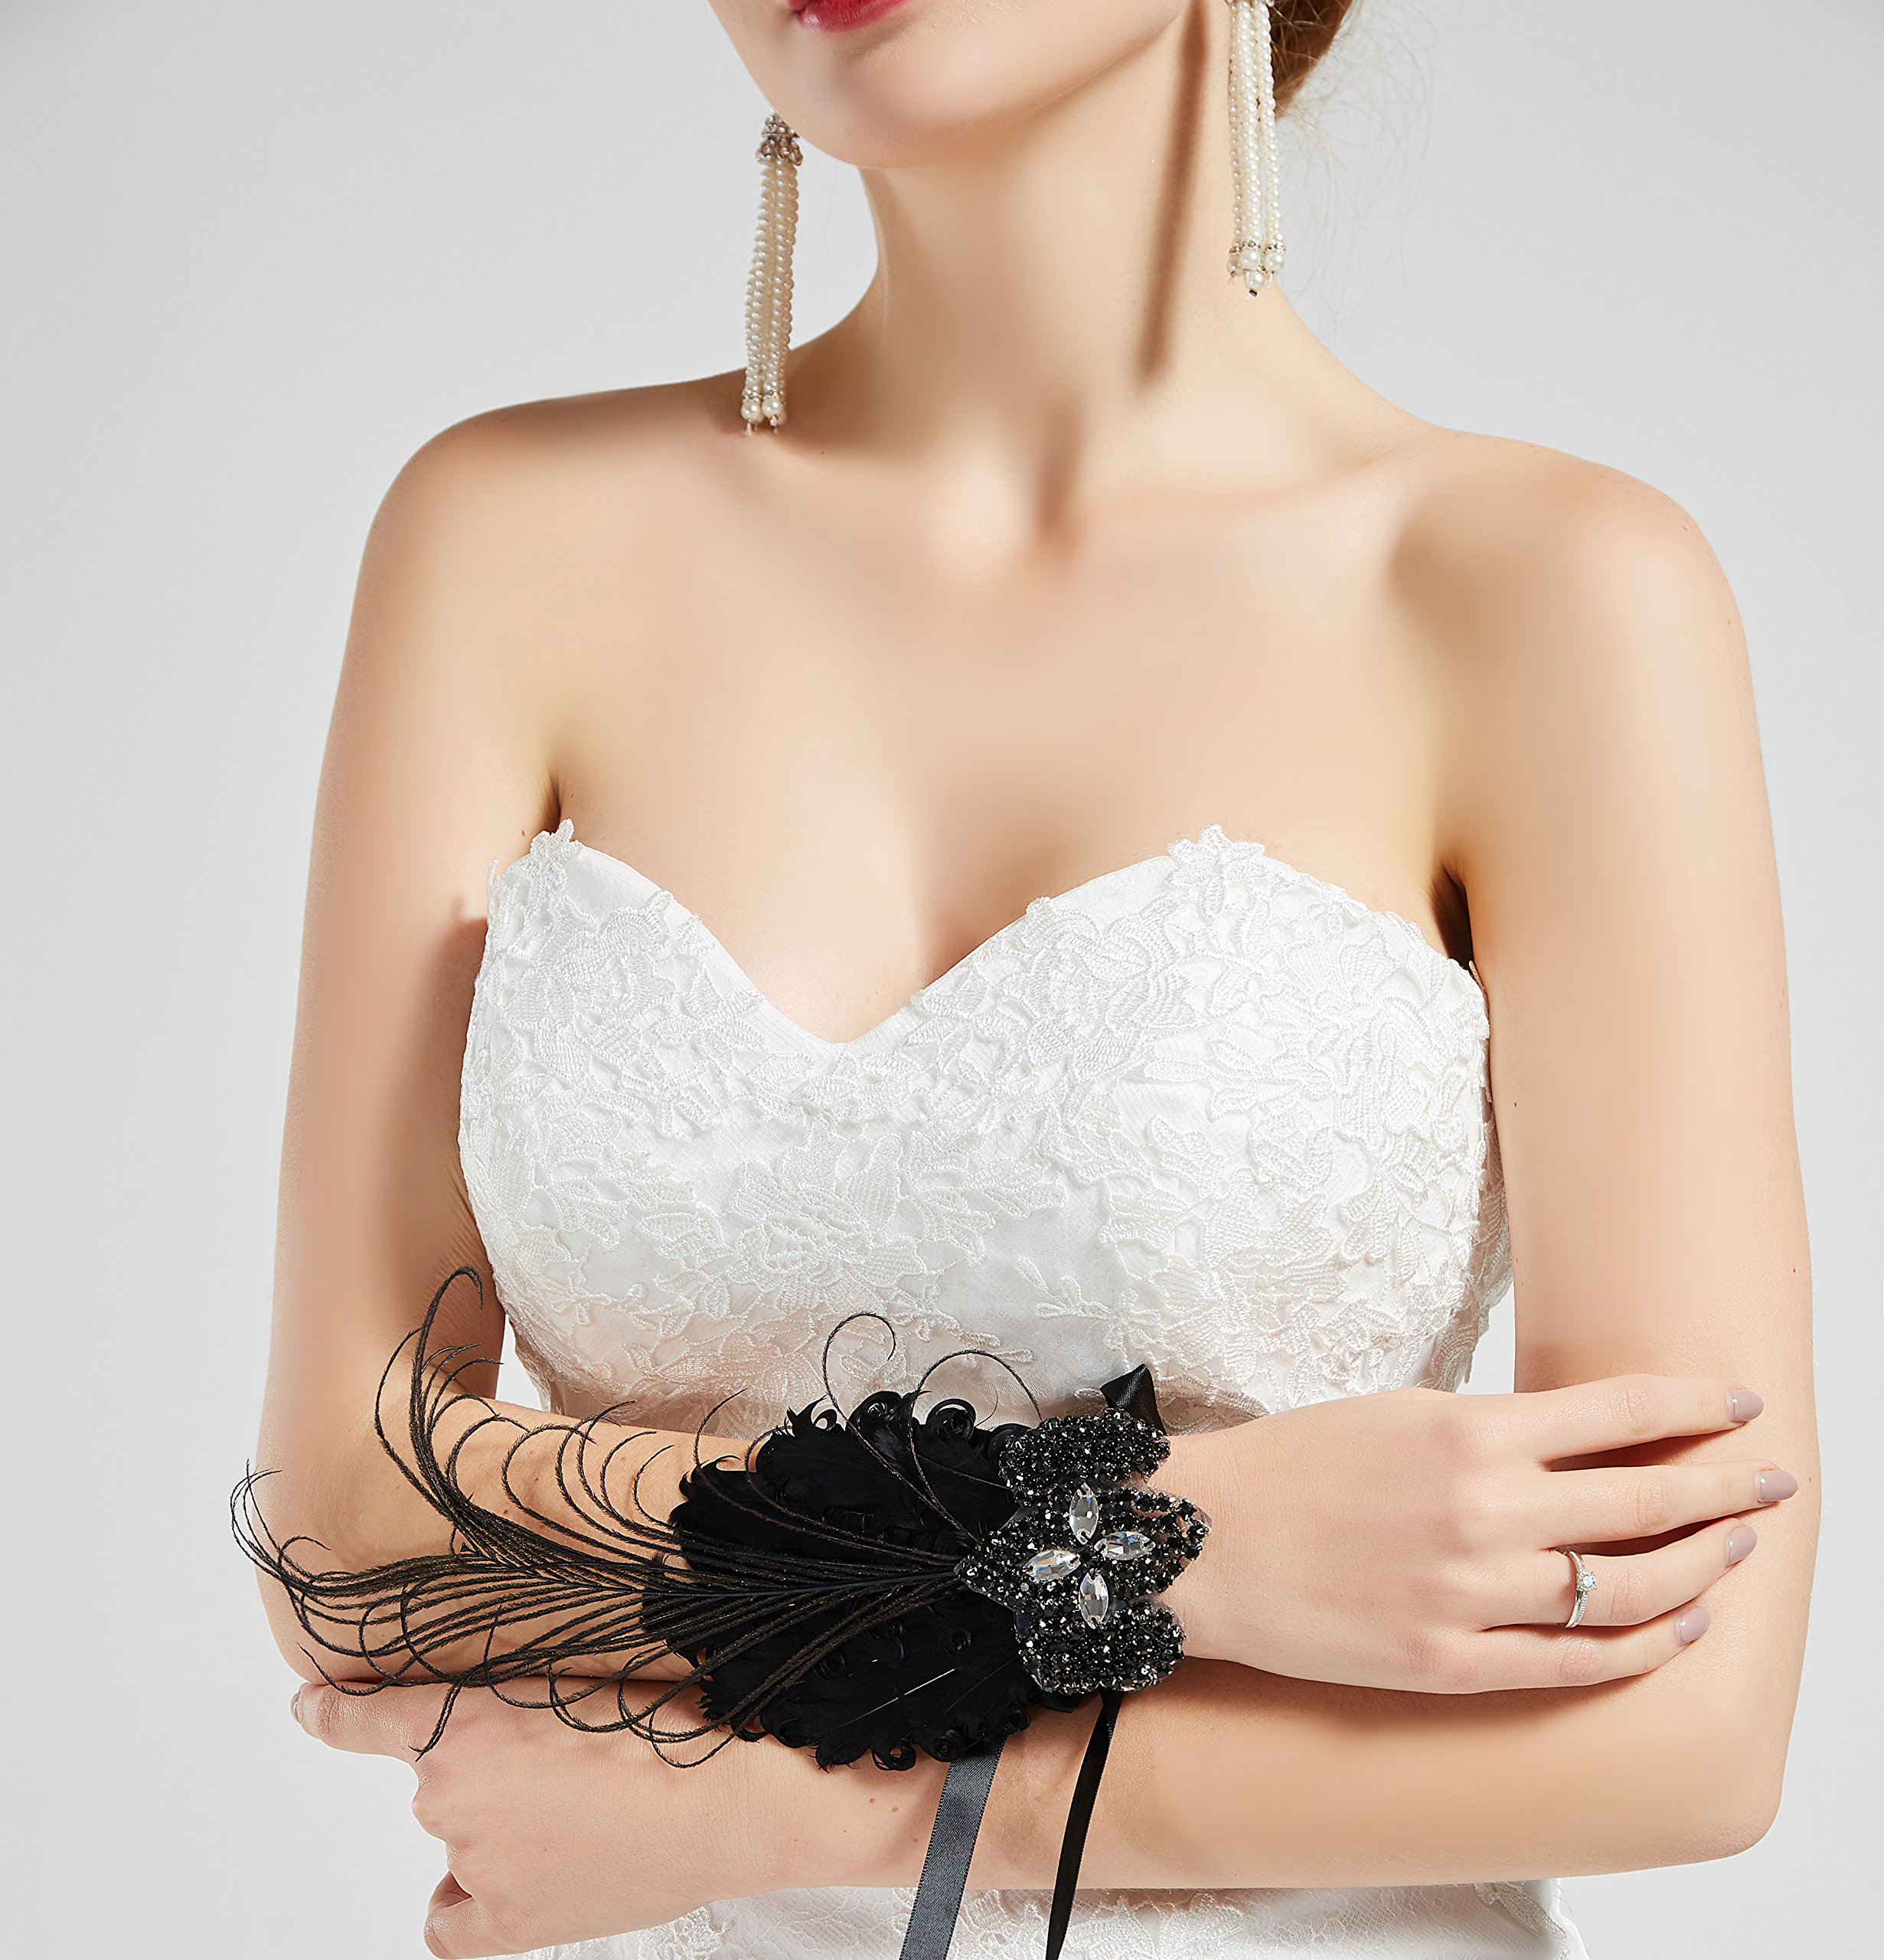 BABEYOND 1920s Wedding Wrist Corsage Gatsby Peacock Feather Bridal Wristband Corsage Roaring 20s Flapper Wedding Costume Accessories (Black by BABEYOND (Image #4)